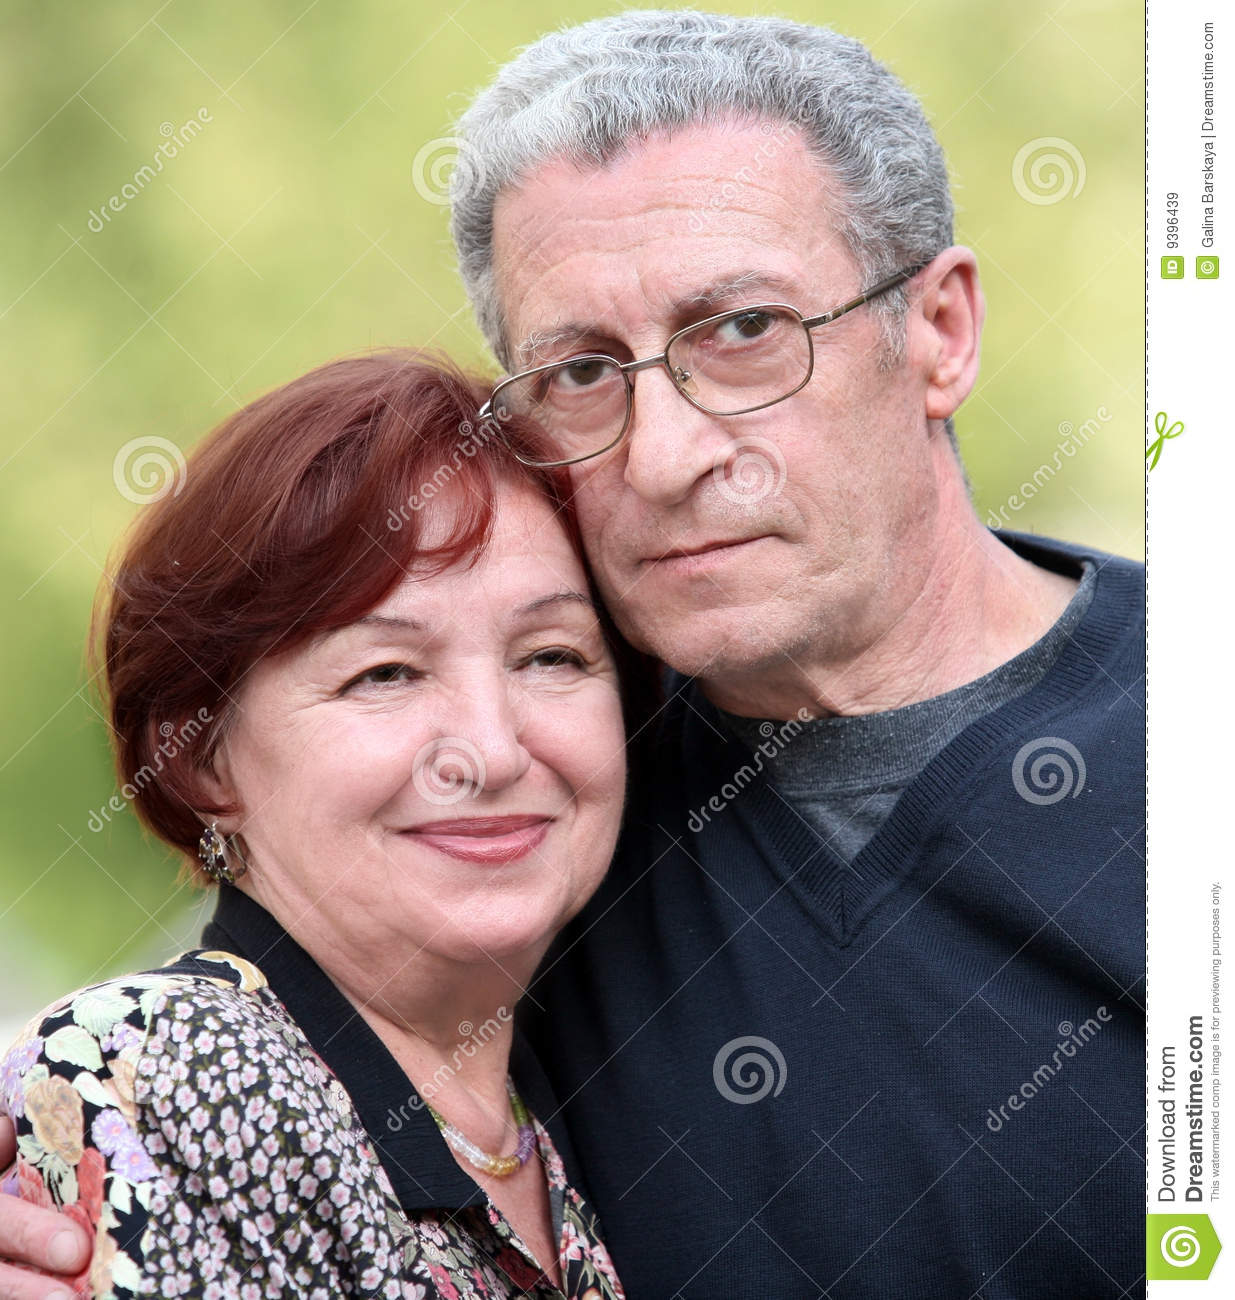 Couple happy mature